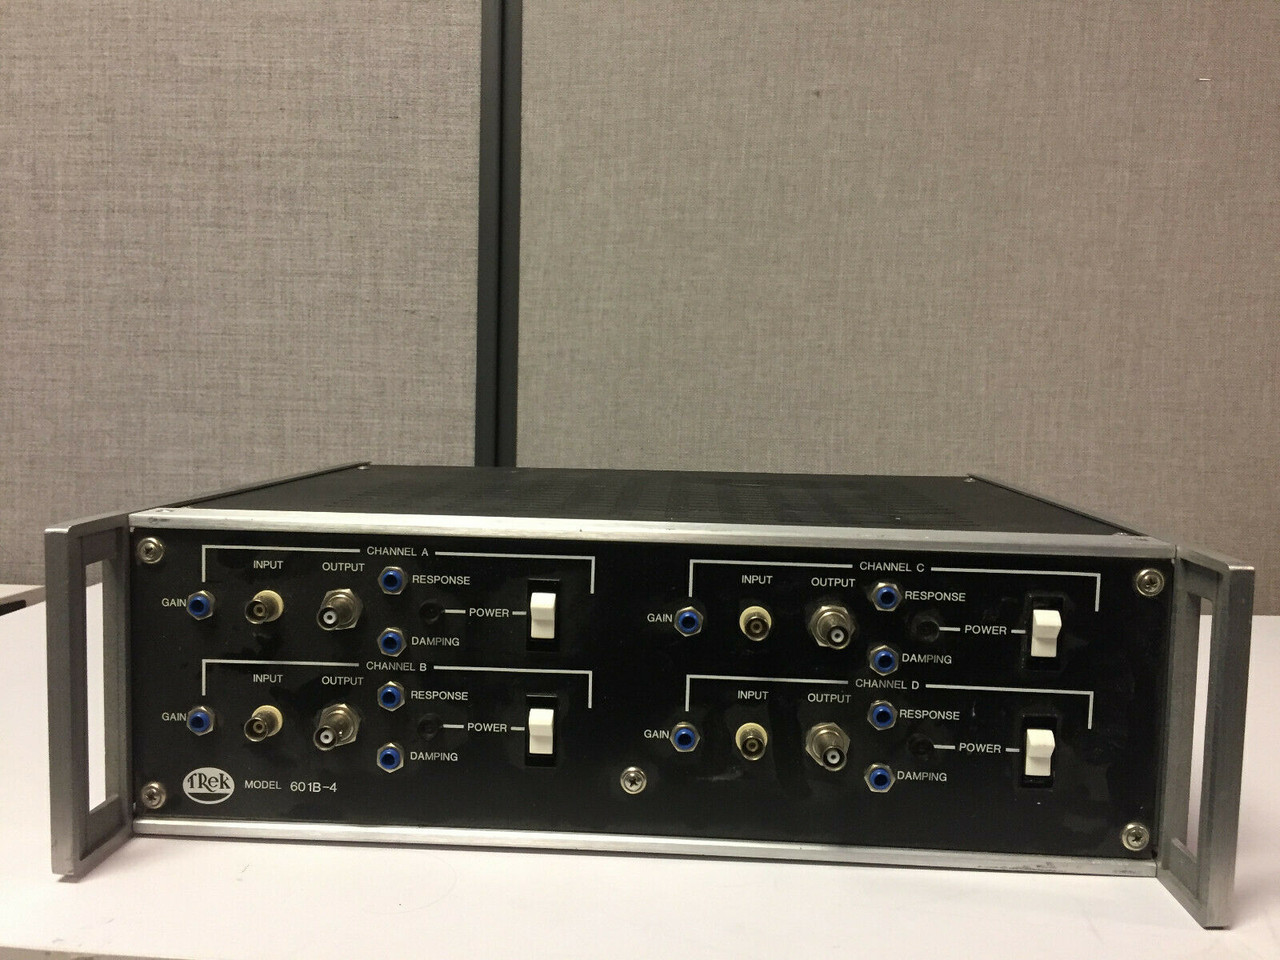 Refurbished Trek 601B-4 [Four channels] High Voltage Amplifier +/-500/10mA Warranty all Cable